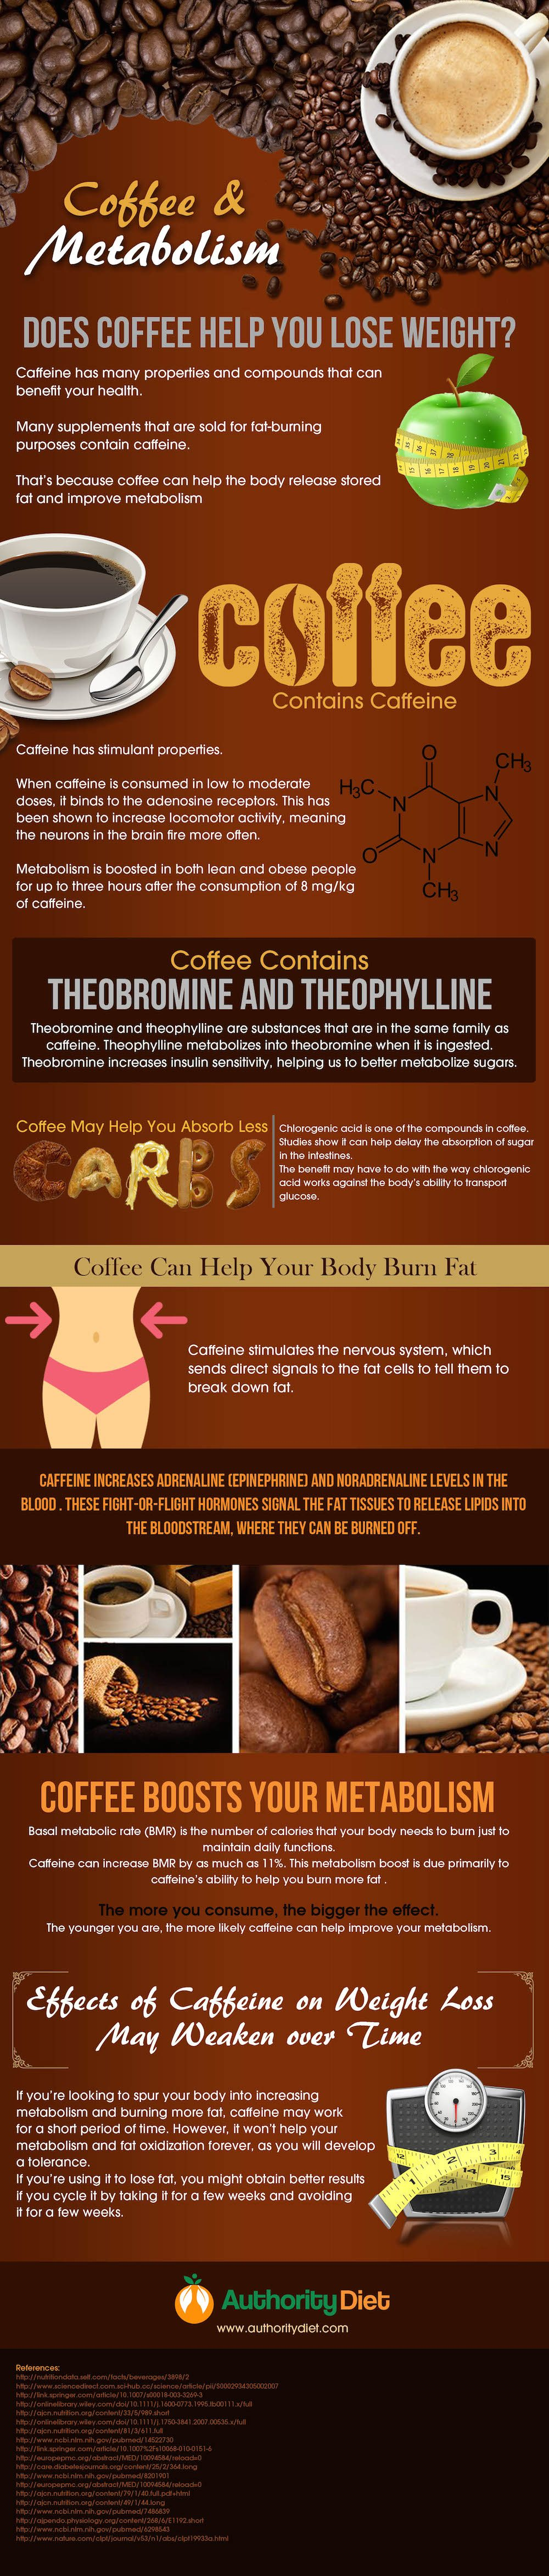 Infographic: How You Can Burn Fat by Drinking Coffee